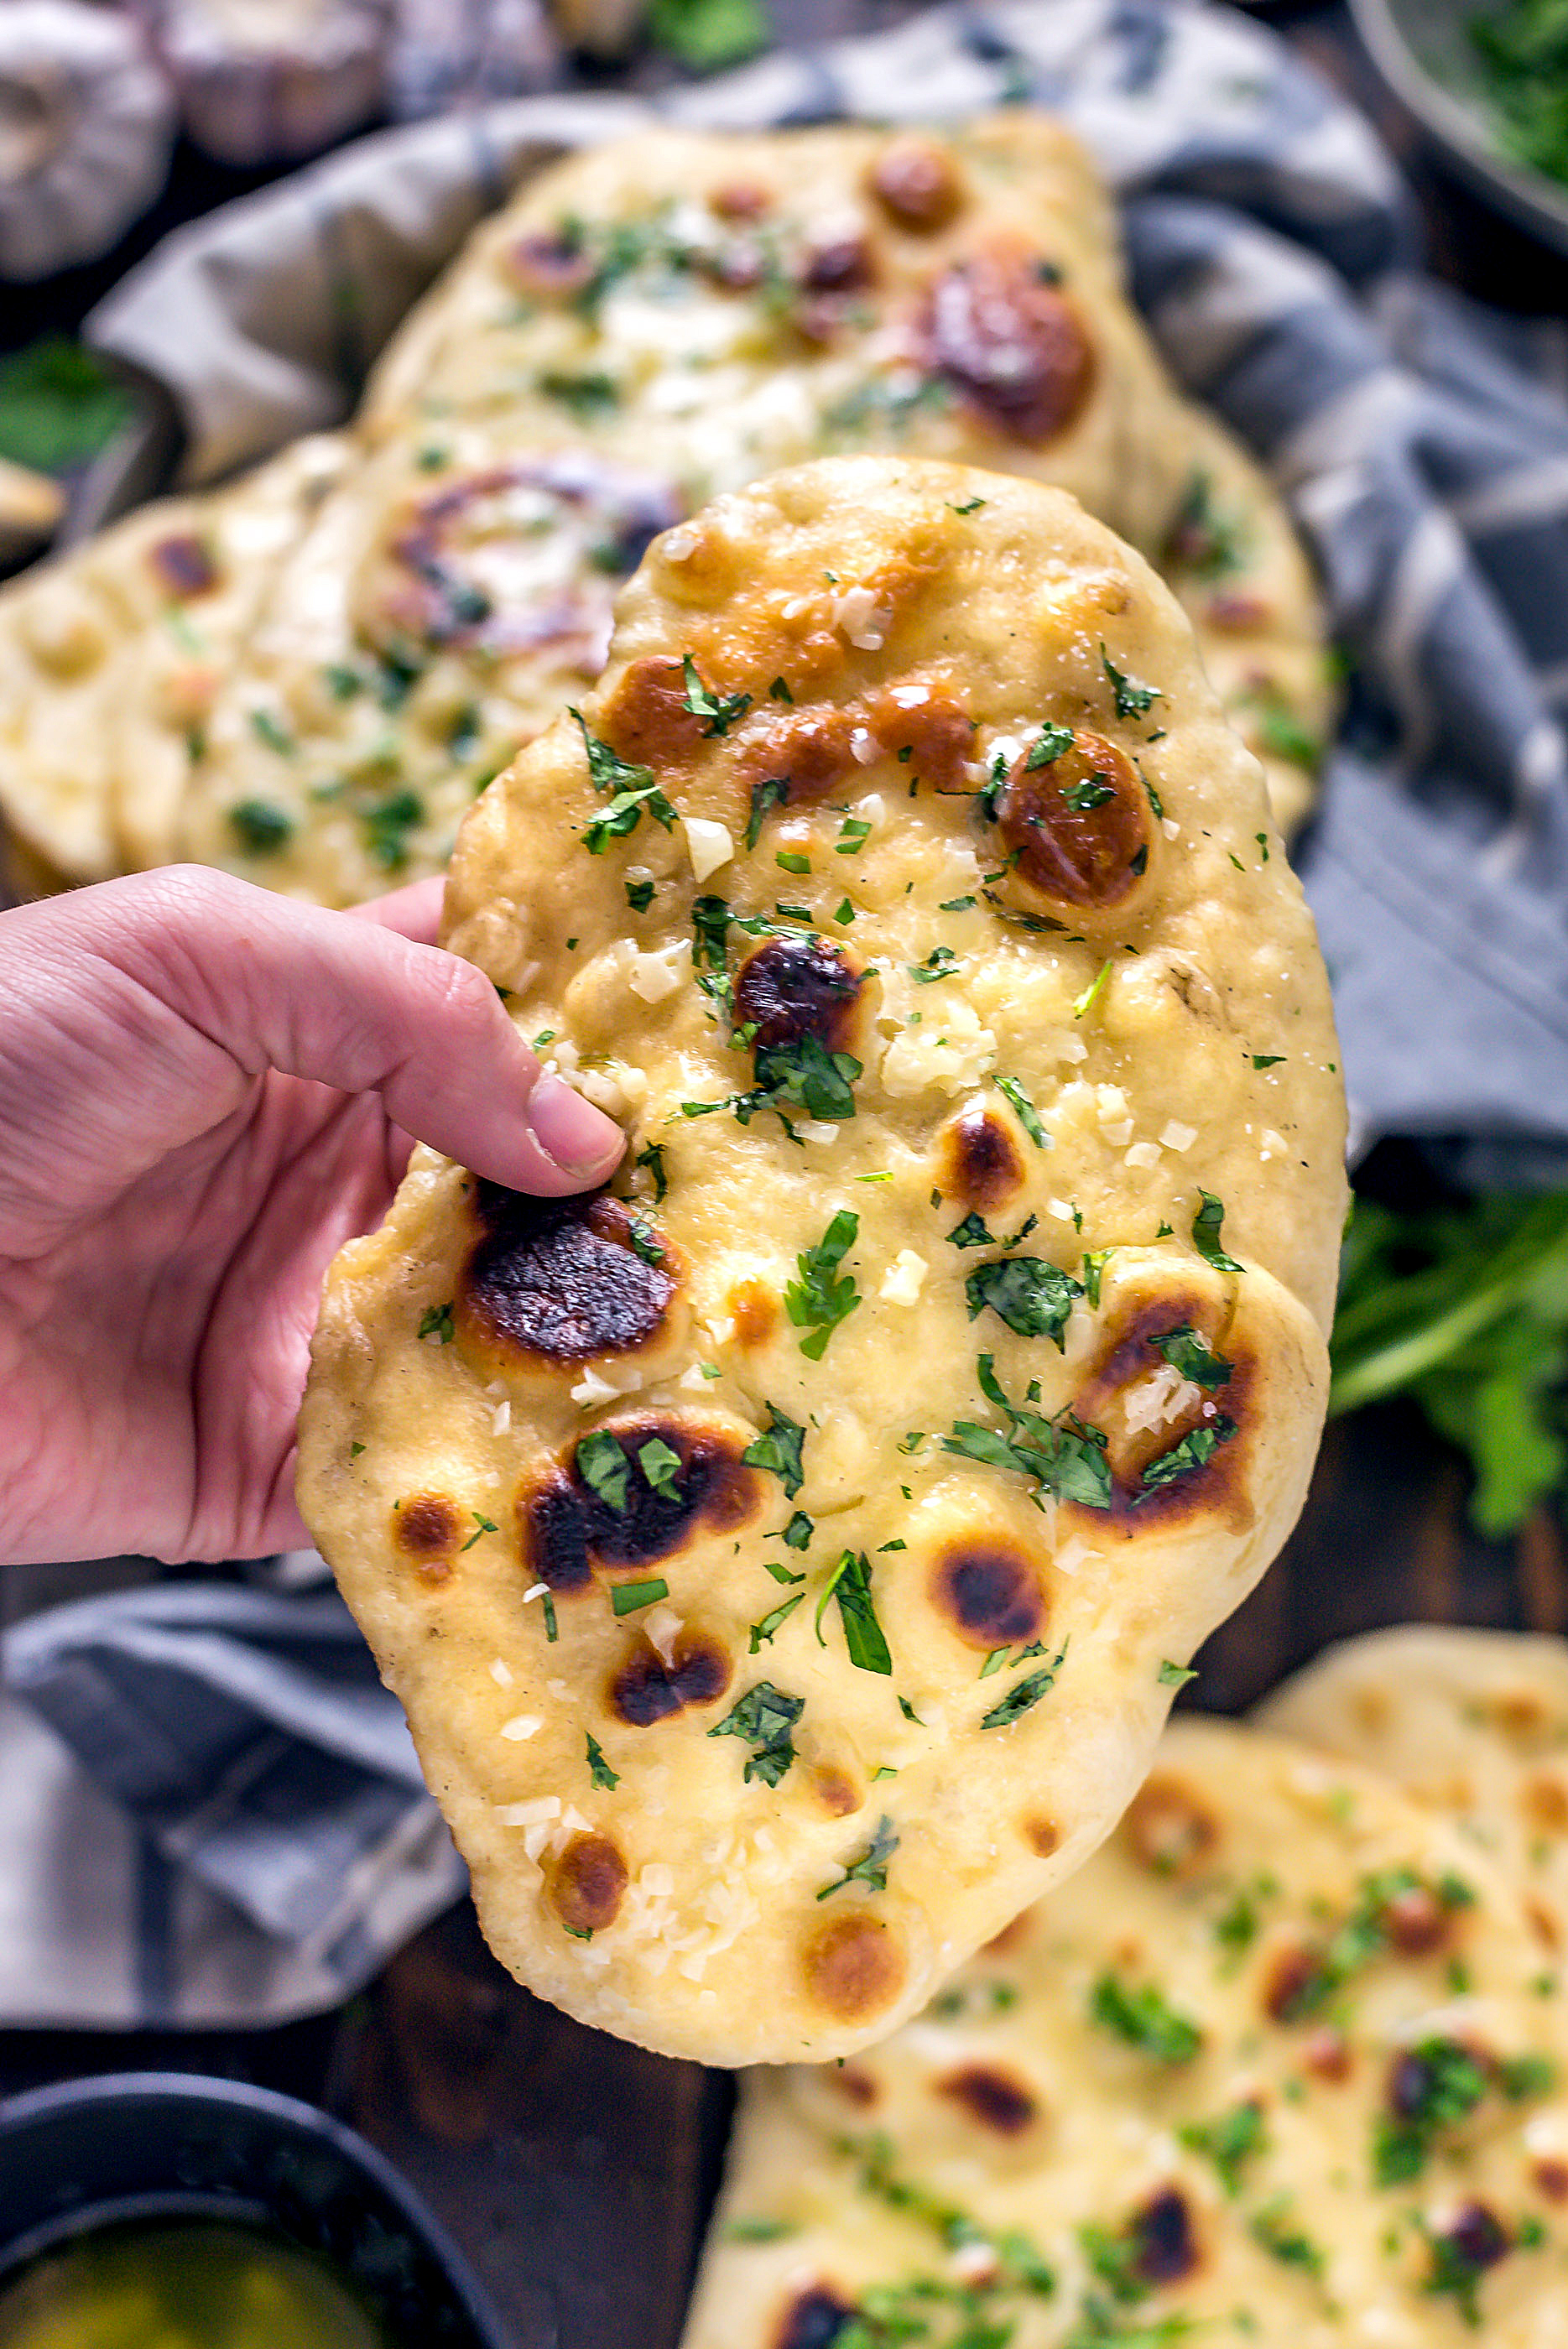 Hand holding up a soft piece of Homemade Garlic Naan.